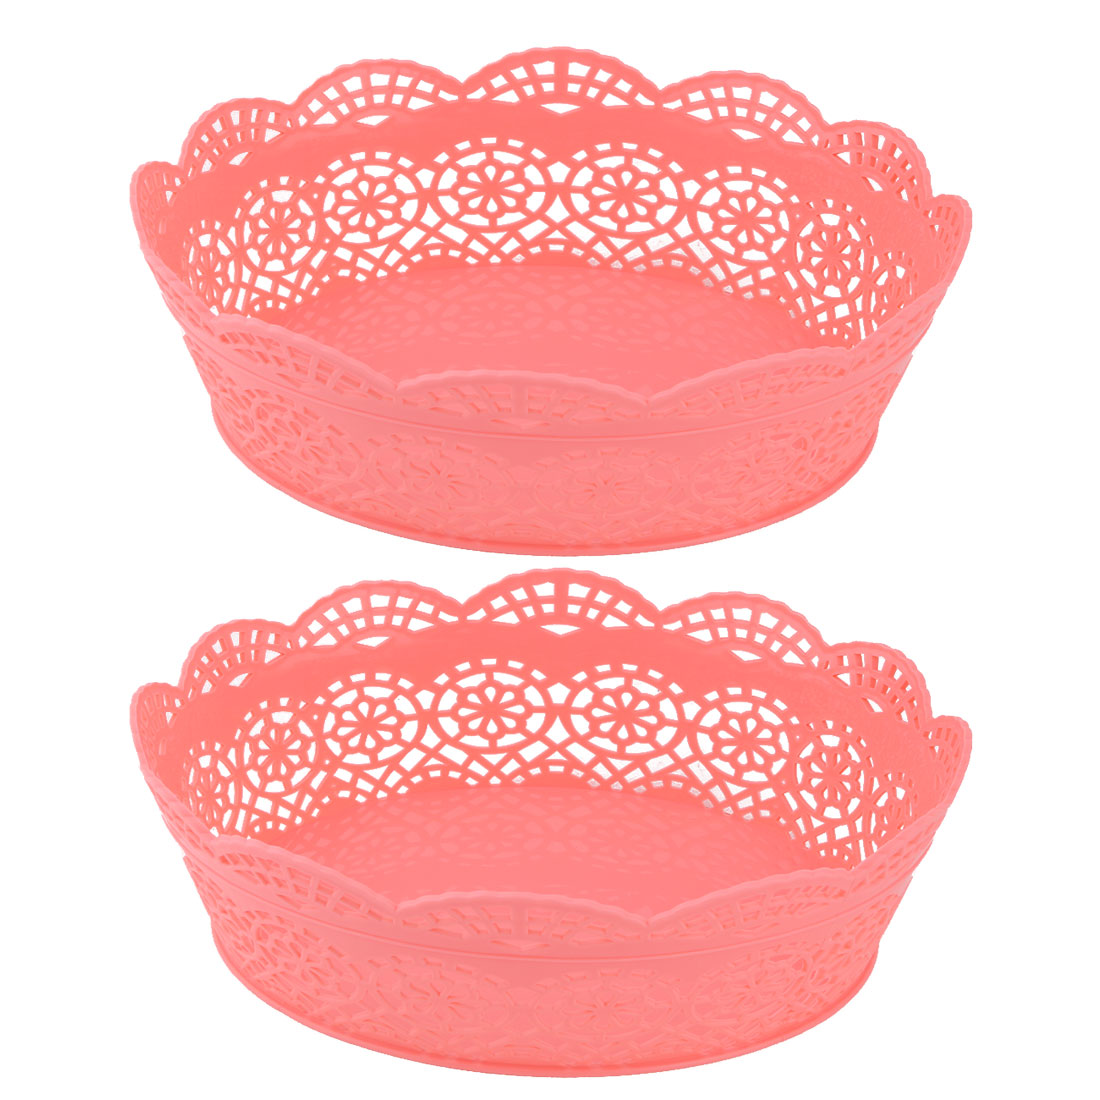 2pcs Plastic Oval Hollow Out Vegetable Washing Storage Fruit Basket